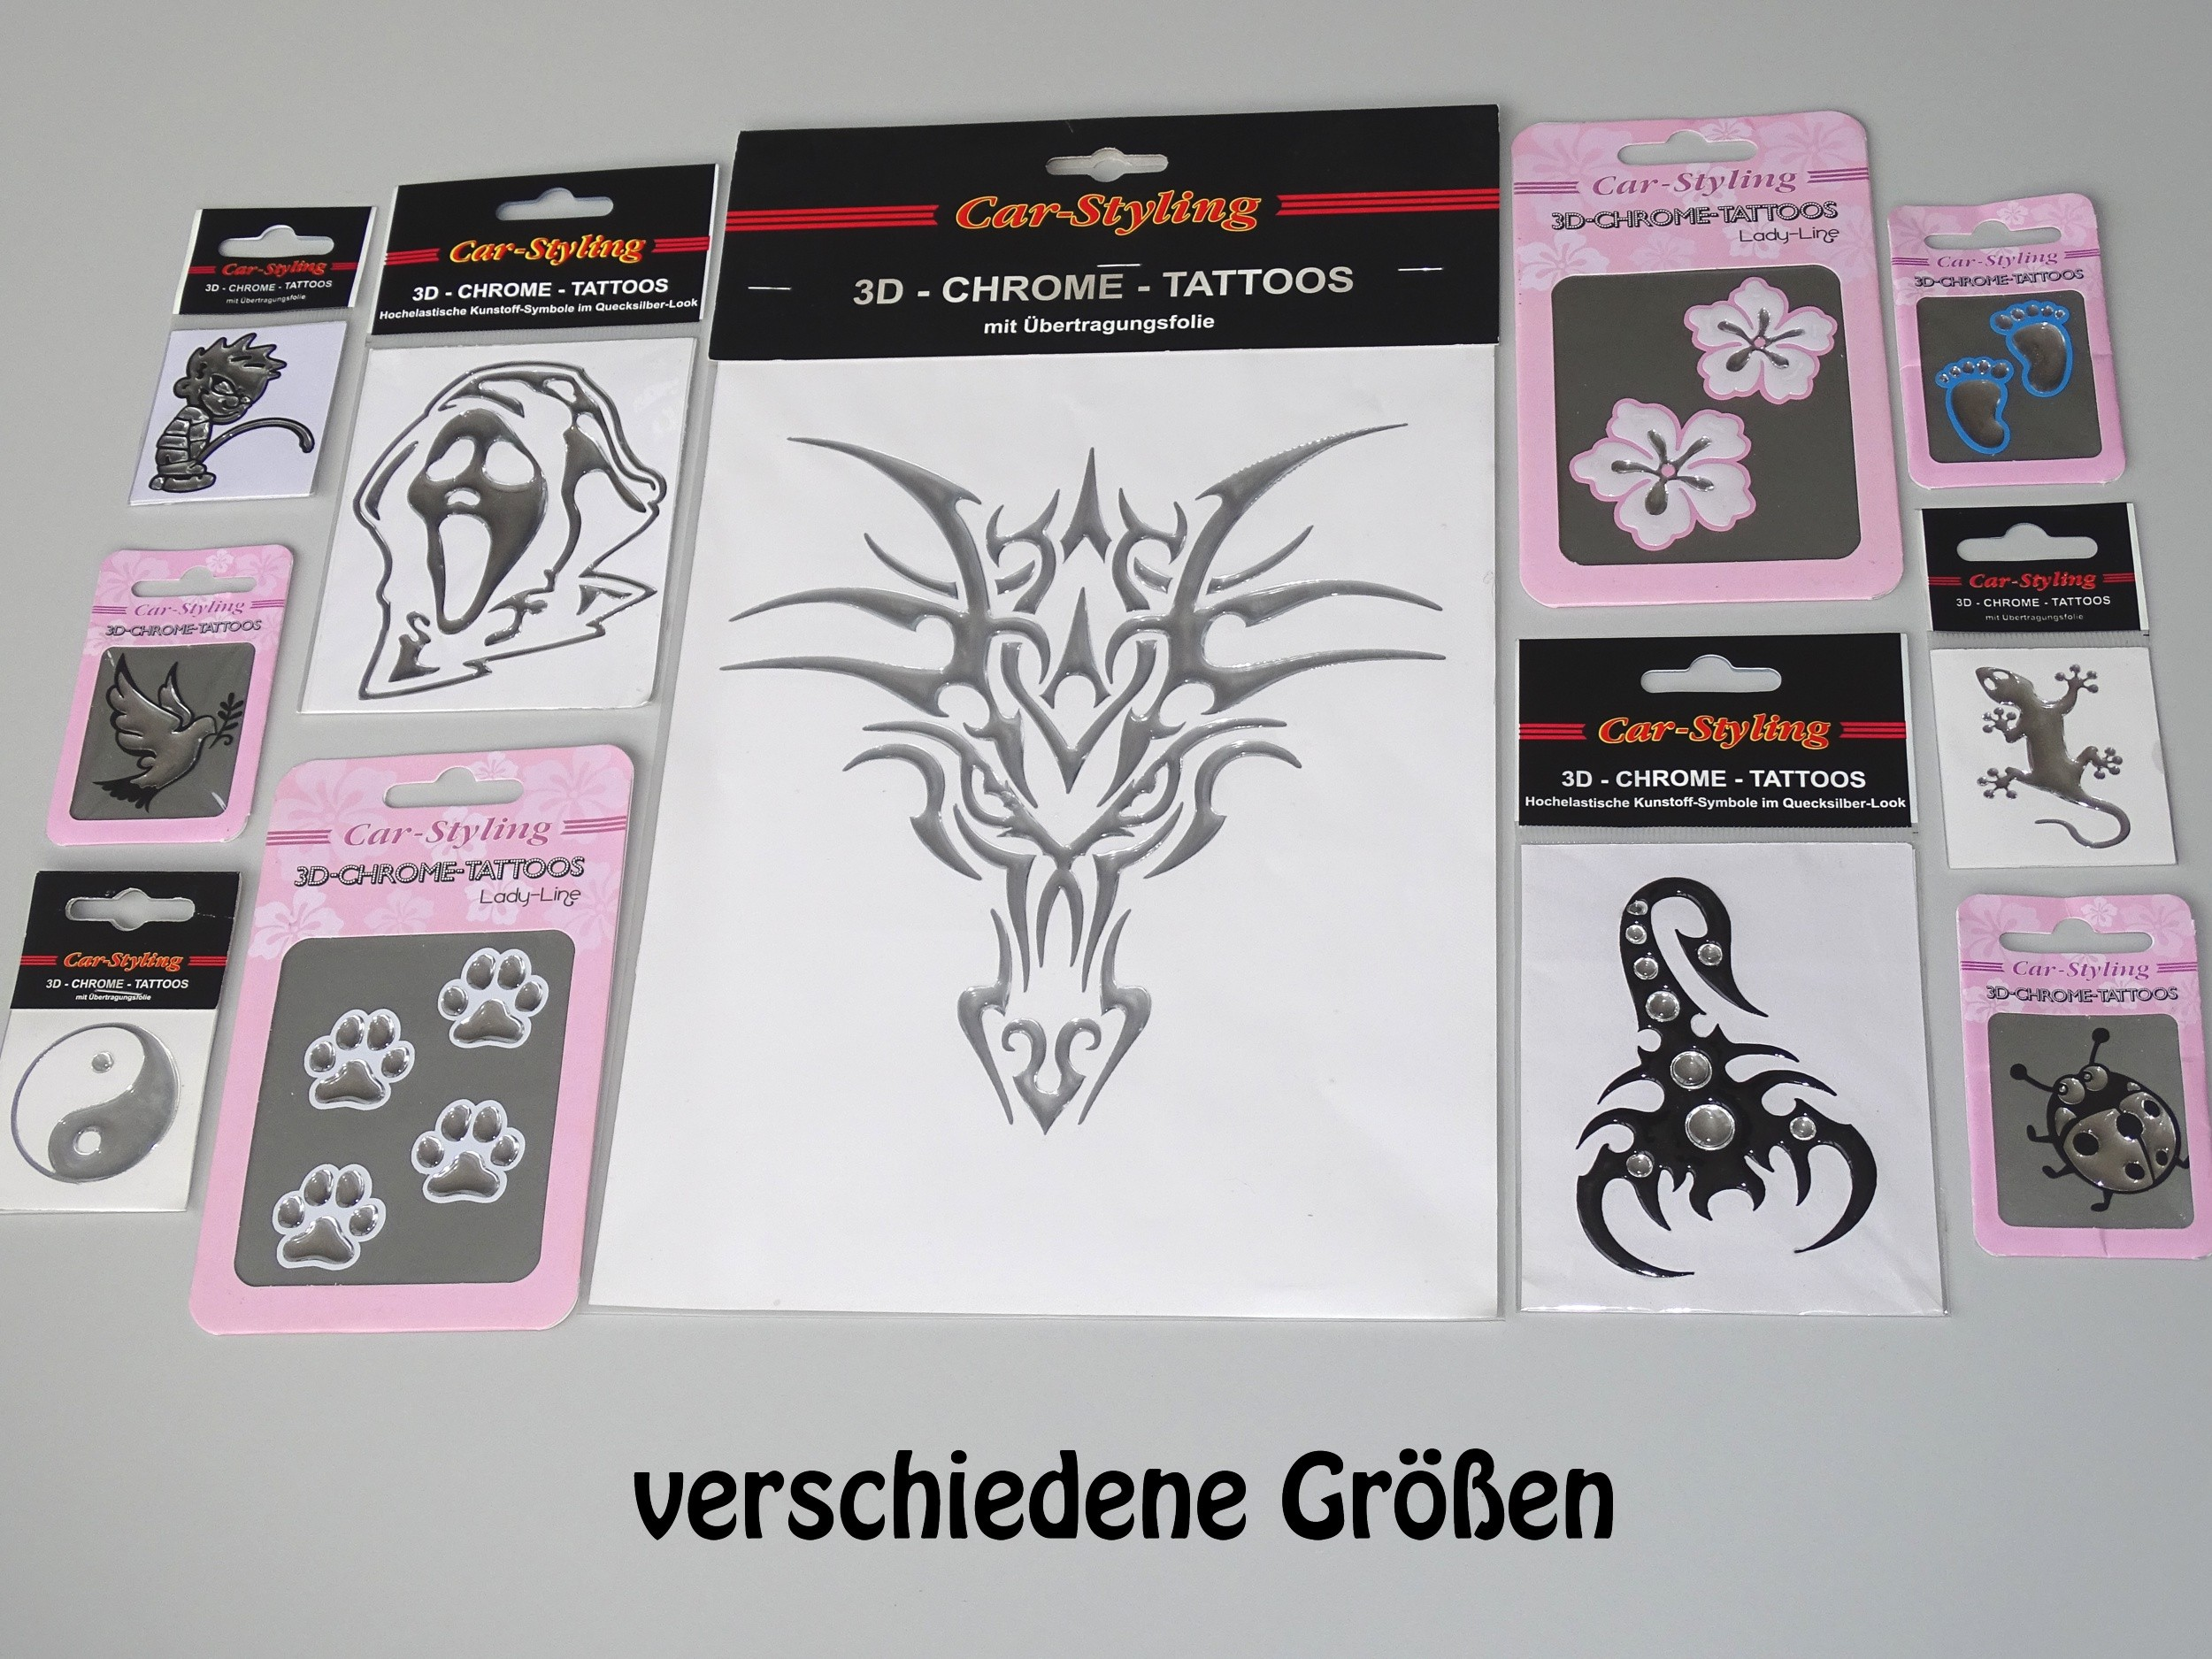 3D-Chrome-Sticker devilhead 90 x 75 mm – Bild 3